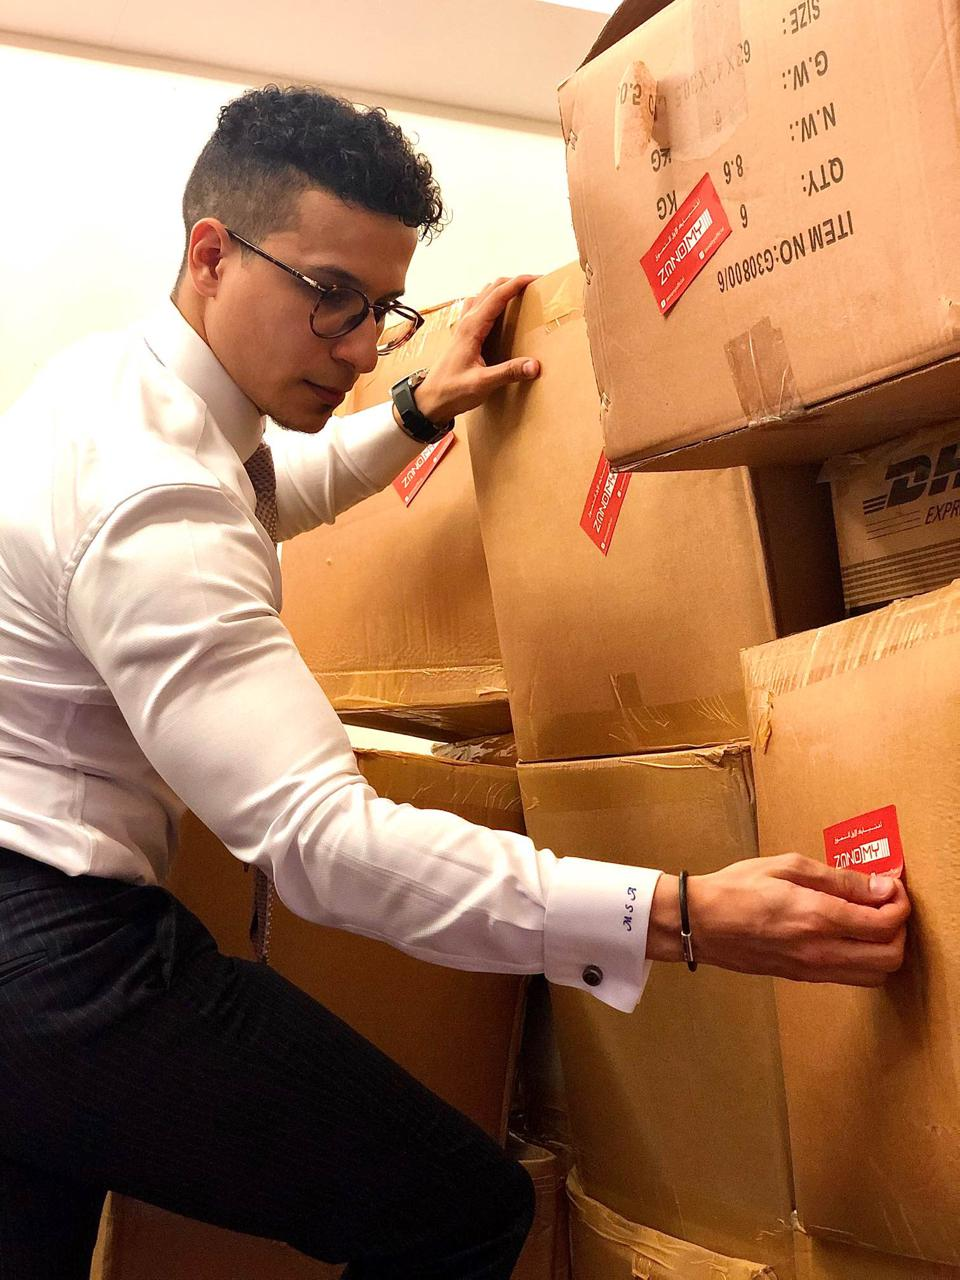 Muhanad Saleh, founder and chief executive of Zanomy, packing boxes before sending them on to customers in Libya.